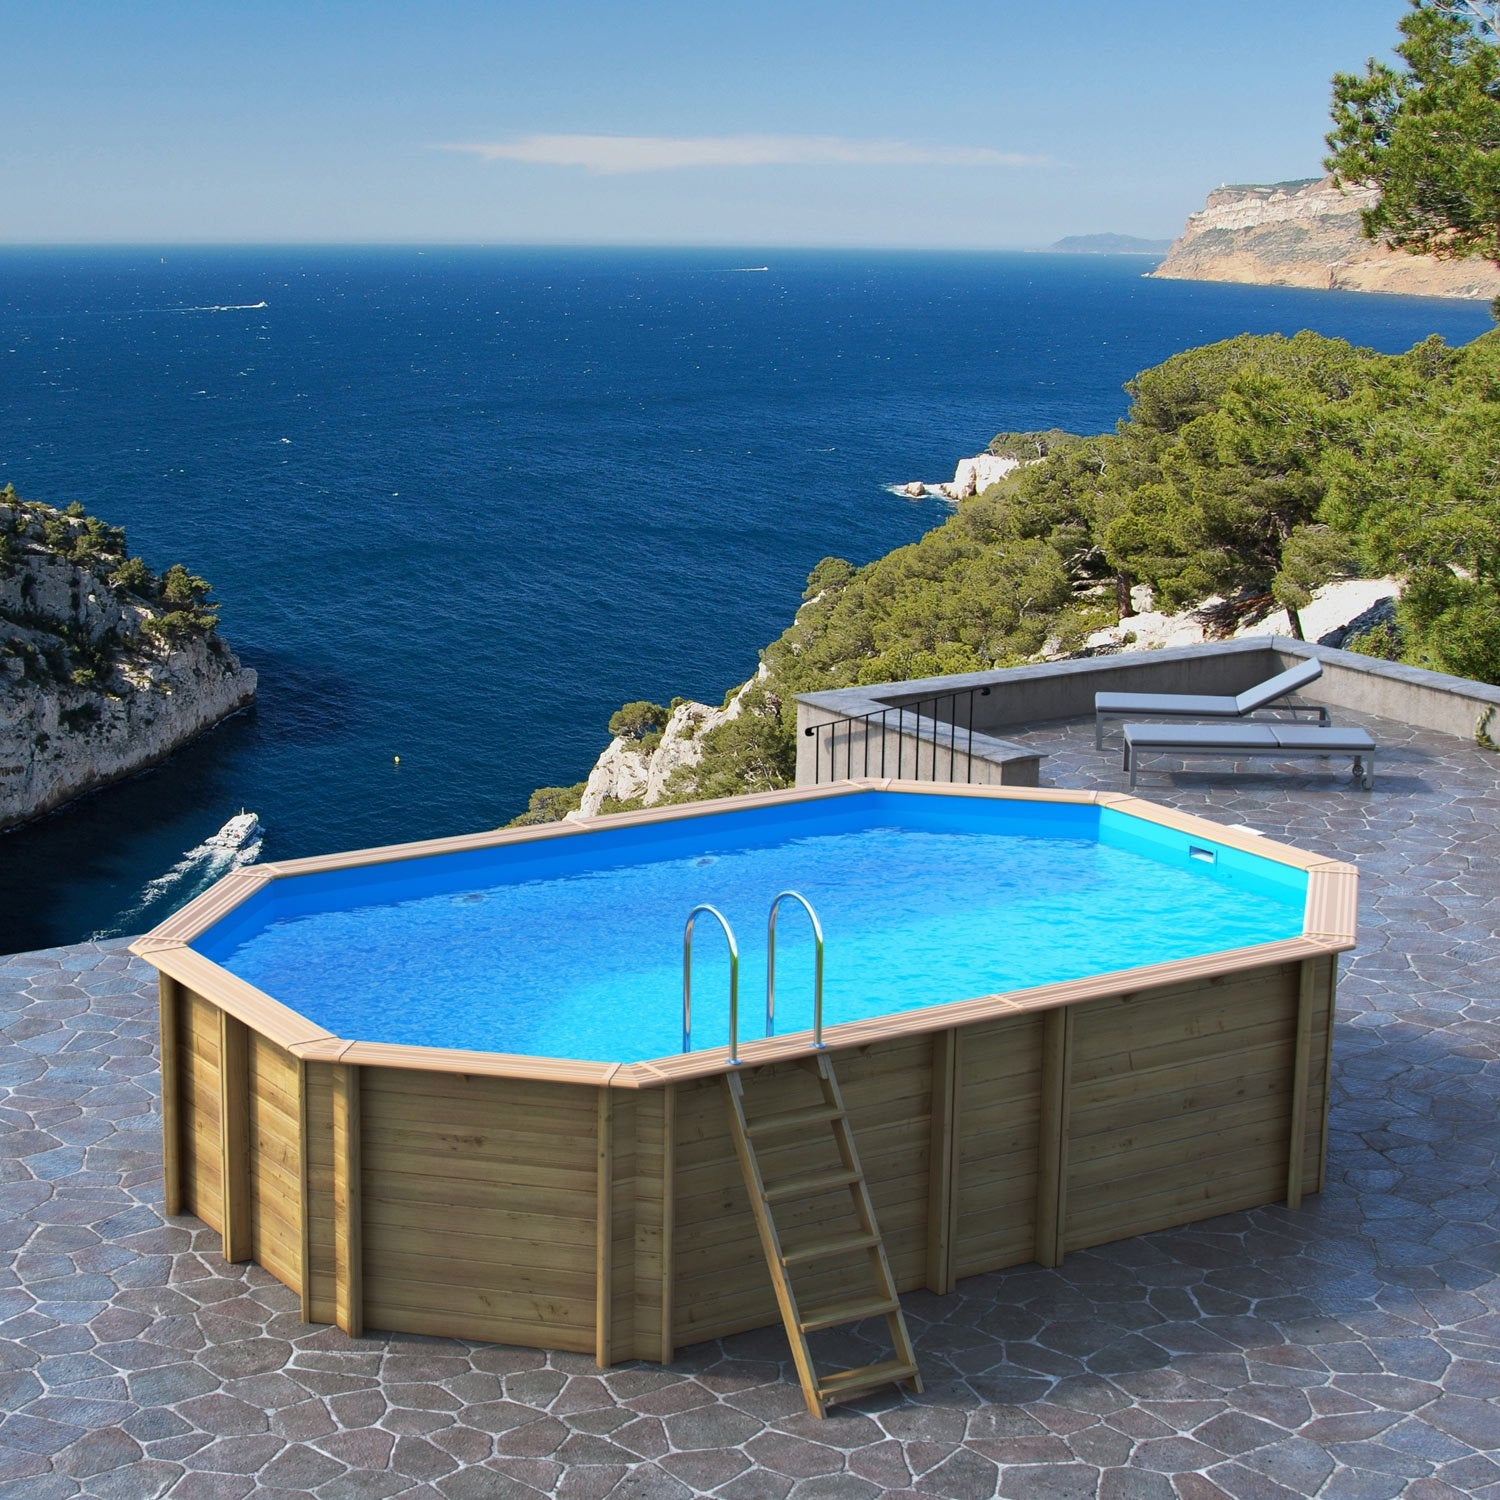 Piscine hors sol bois odyssea proswell by procopi l 6 4 x for Piscine hors sol durable